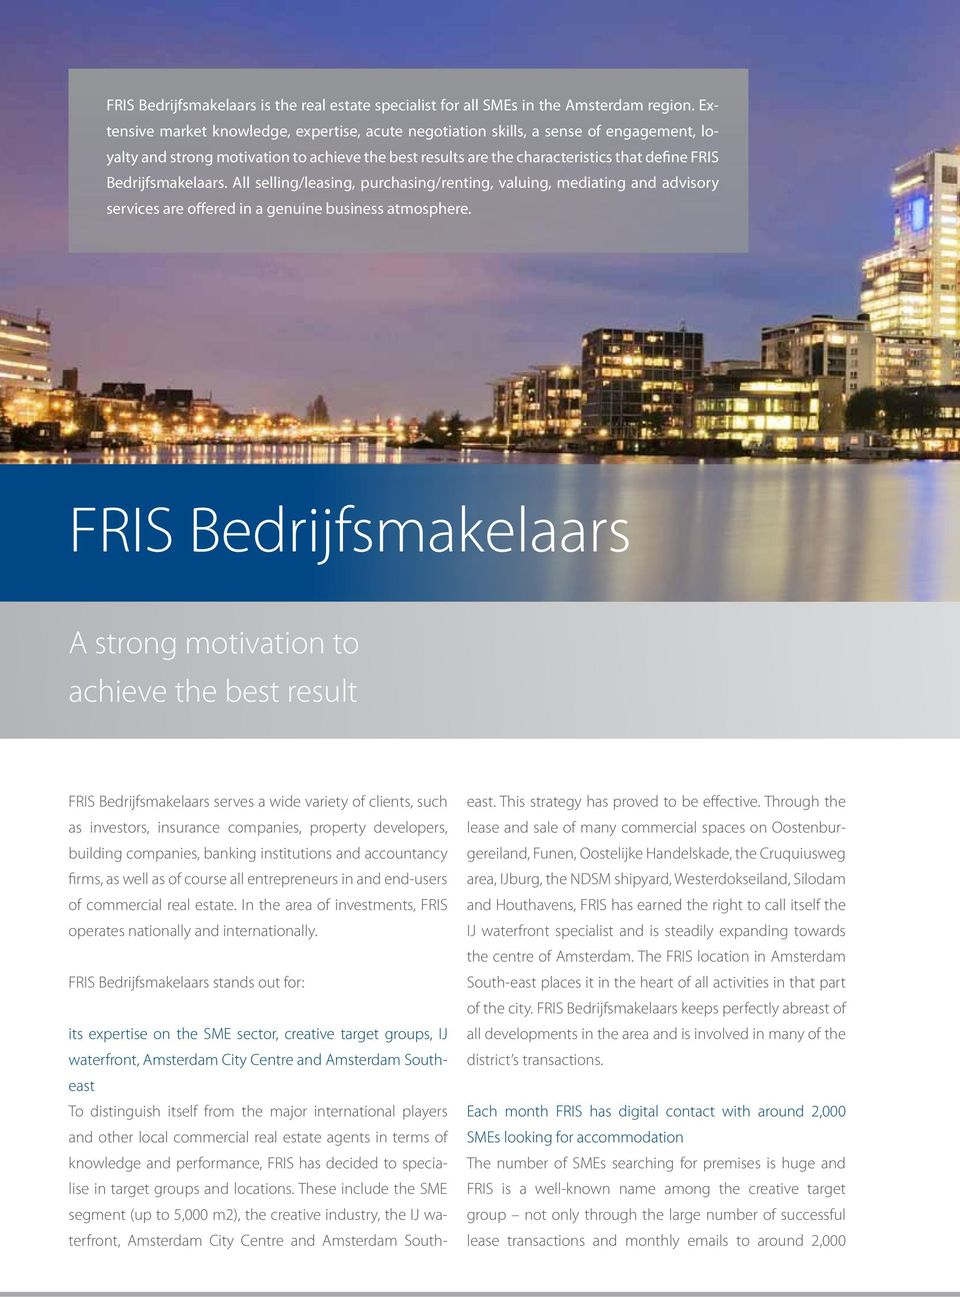 Bedrijfsmakelaars. All selling/leasing, purchasing/renting, valuing, mediating and advisory services are offered in a genuine business atmosphere.